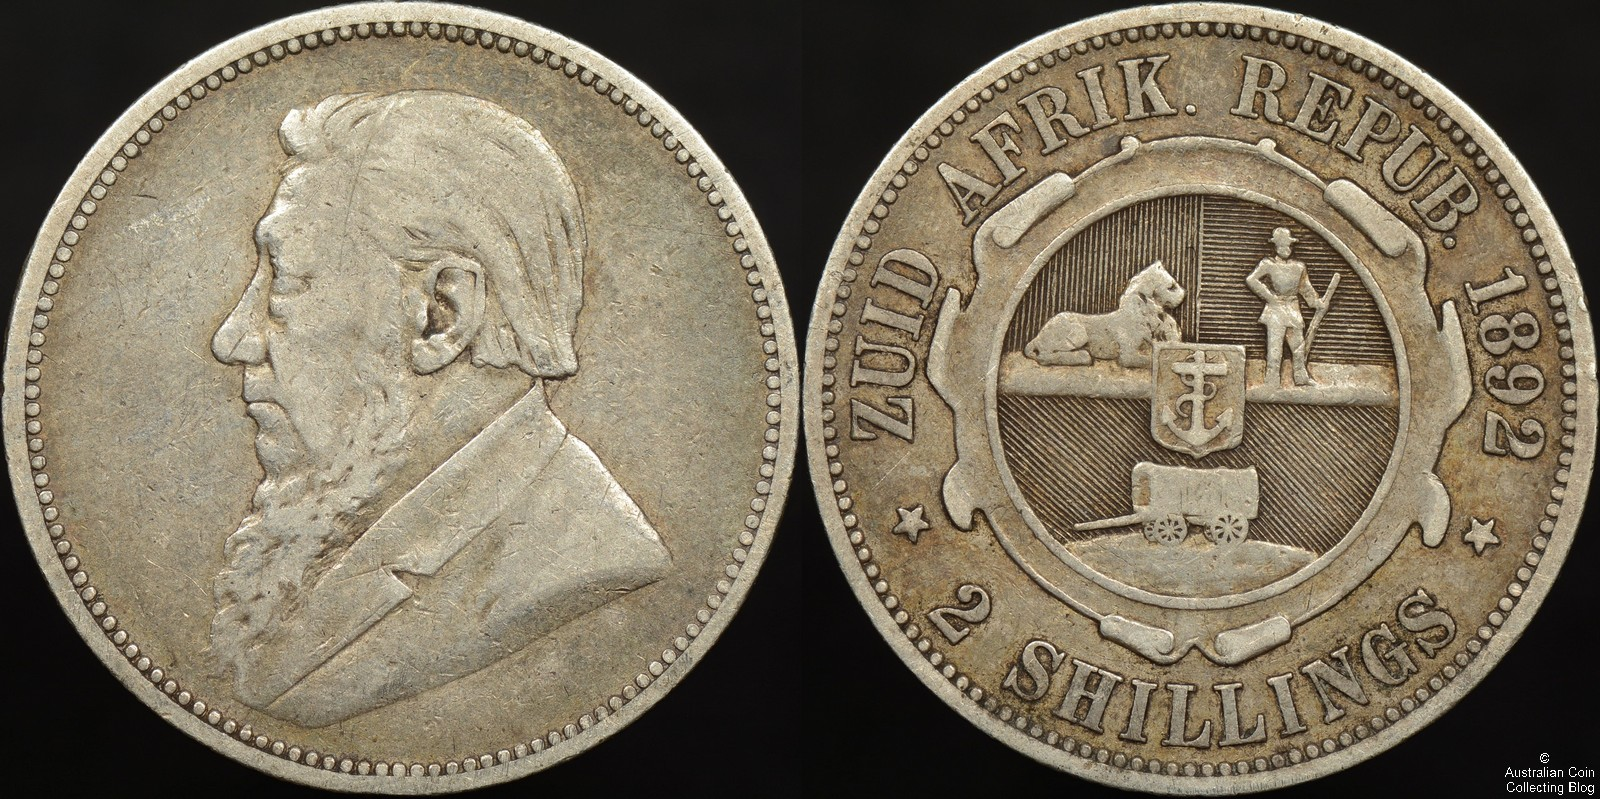 South Africa 1892 2 Shilling